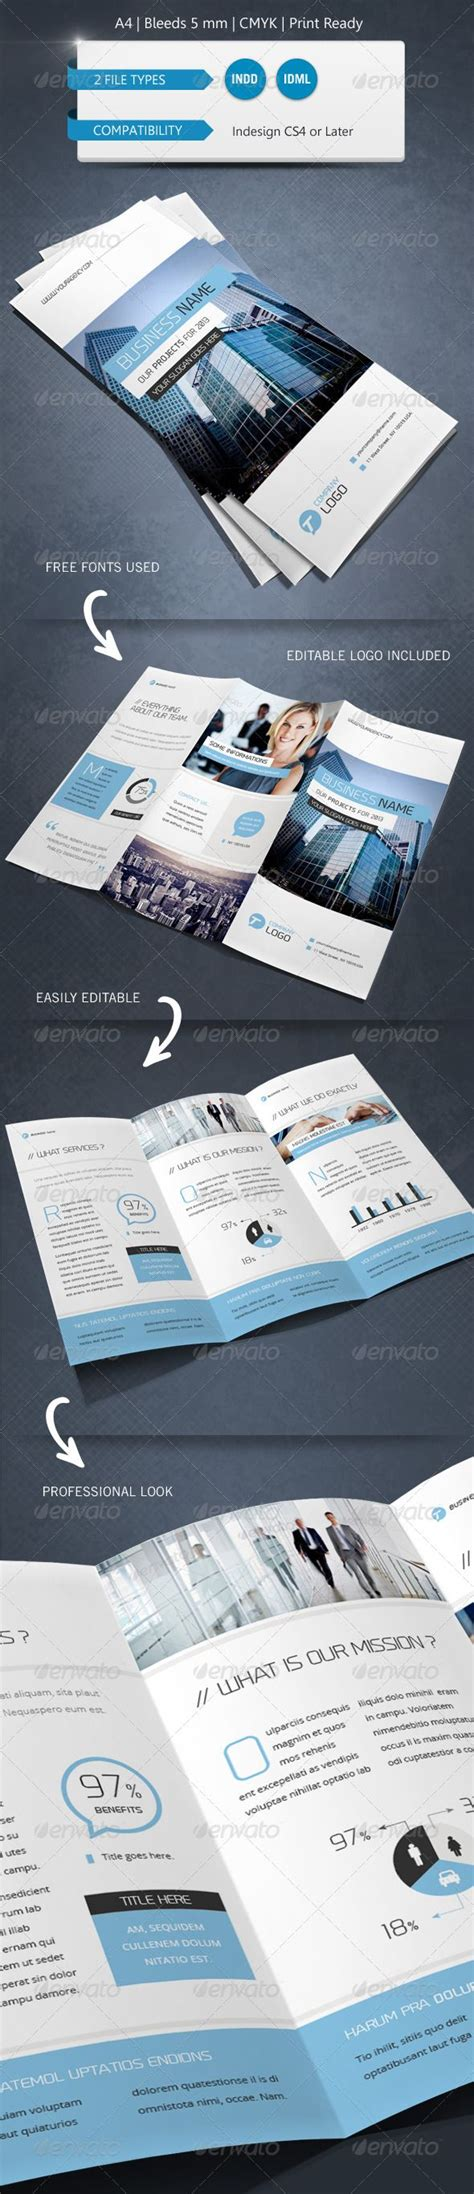 indesign trifold template corporate indesign trifold brochure template advertising